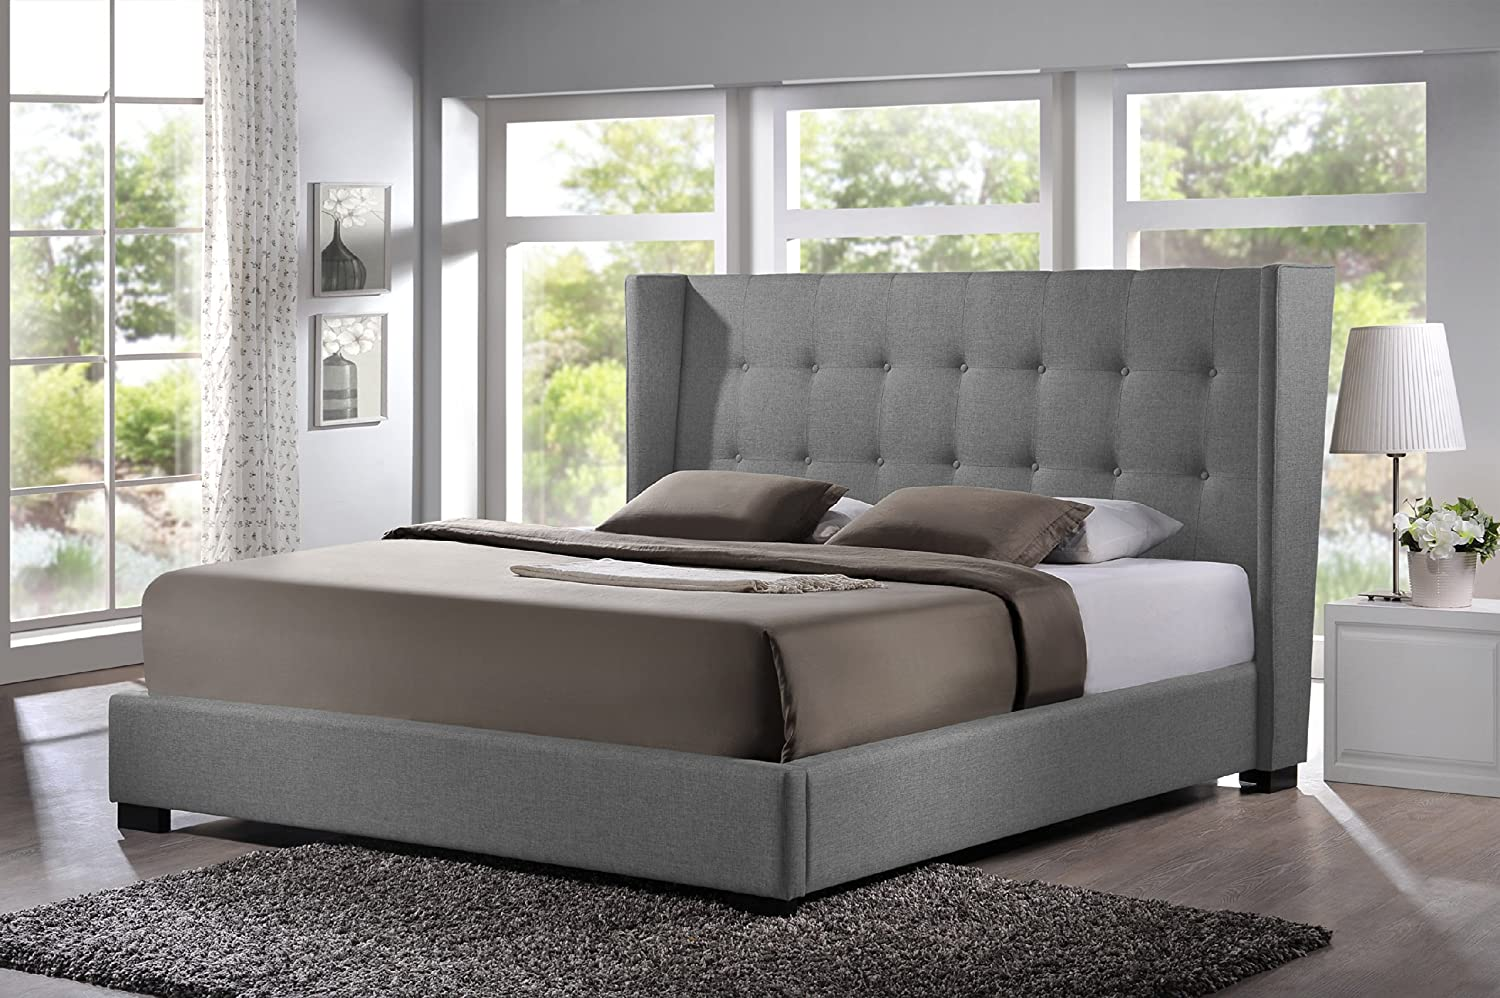 Amazon Com Baxton Studio Favela Linen Modern Bed With Upholstered Headboard King Grey